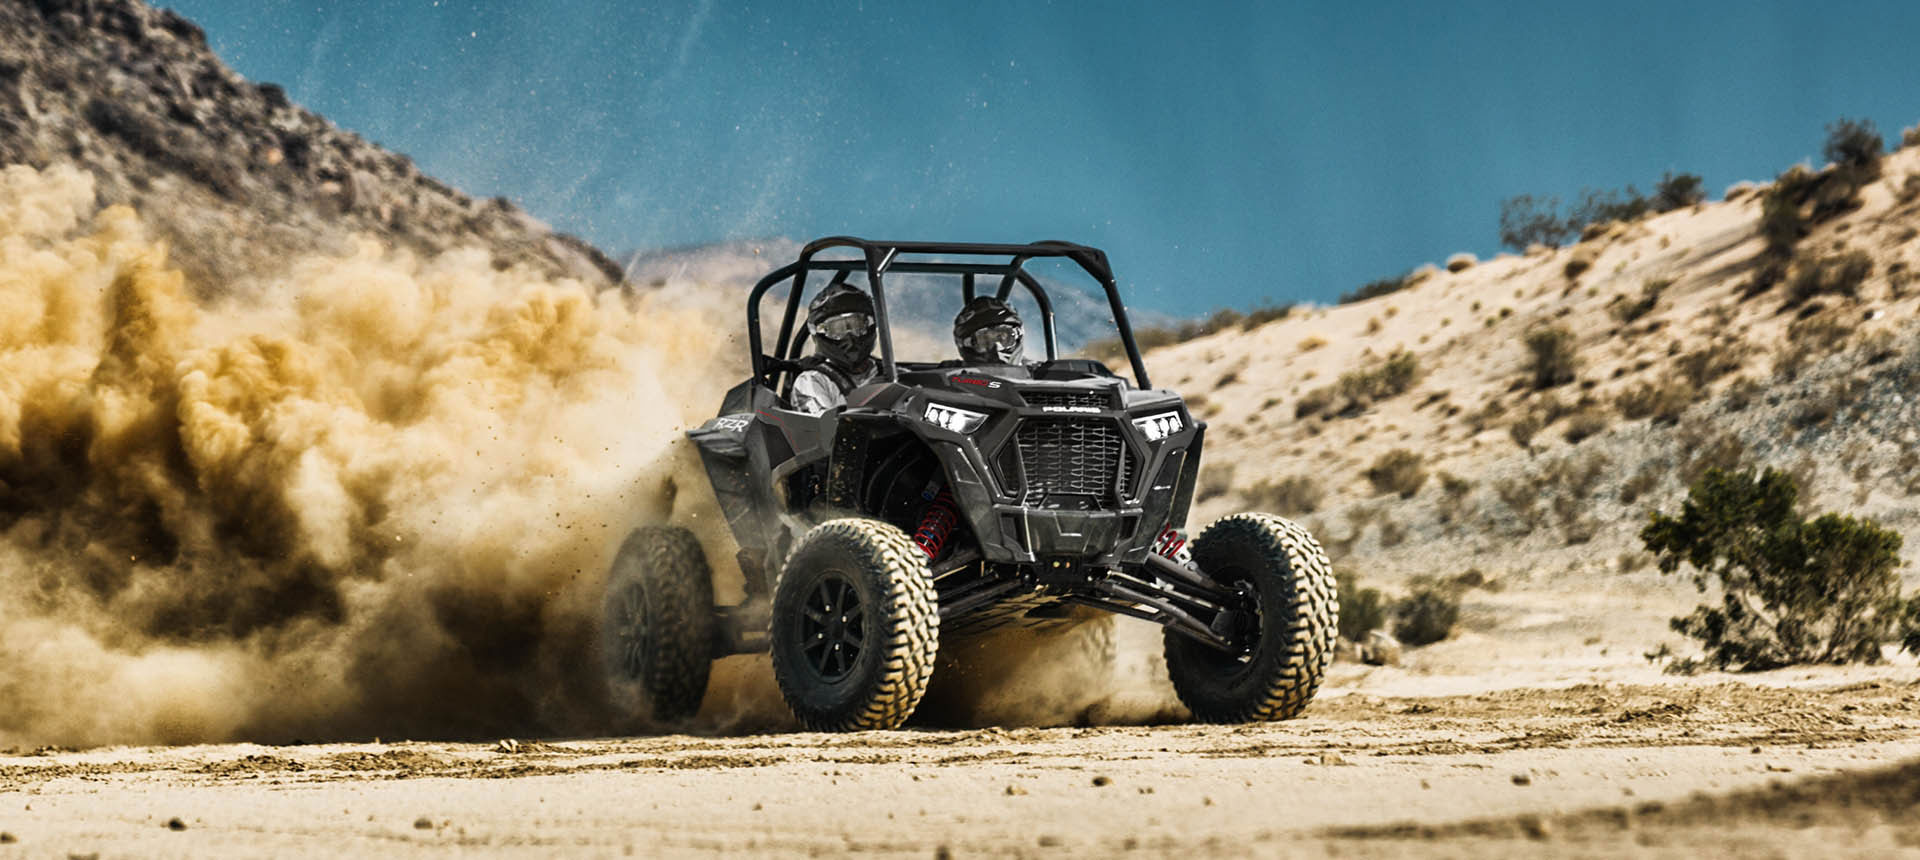 2019-jan-rzr-xp-turbo-s-media-new-2-modal